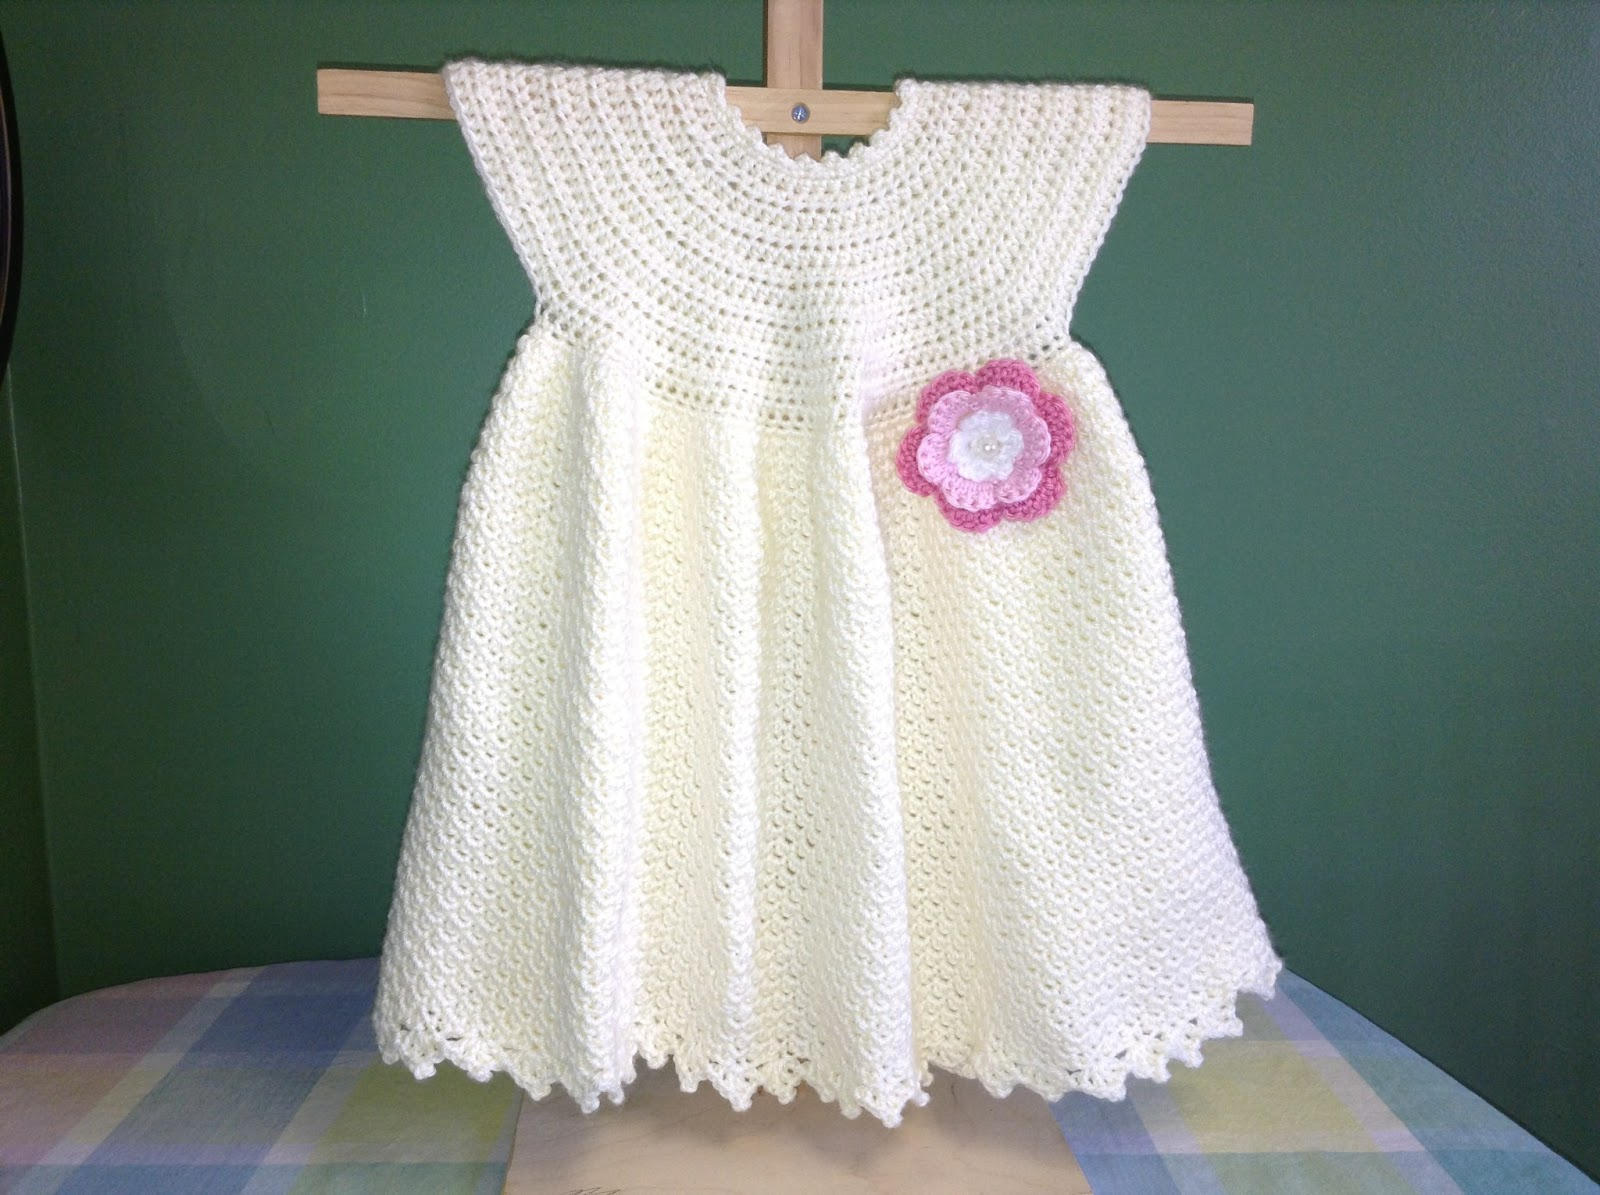 Annas Free Baby Crochet Dress Patterns - Inspiration and ...